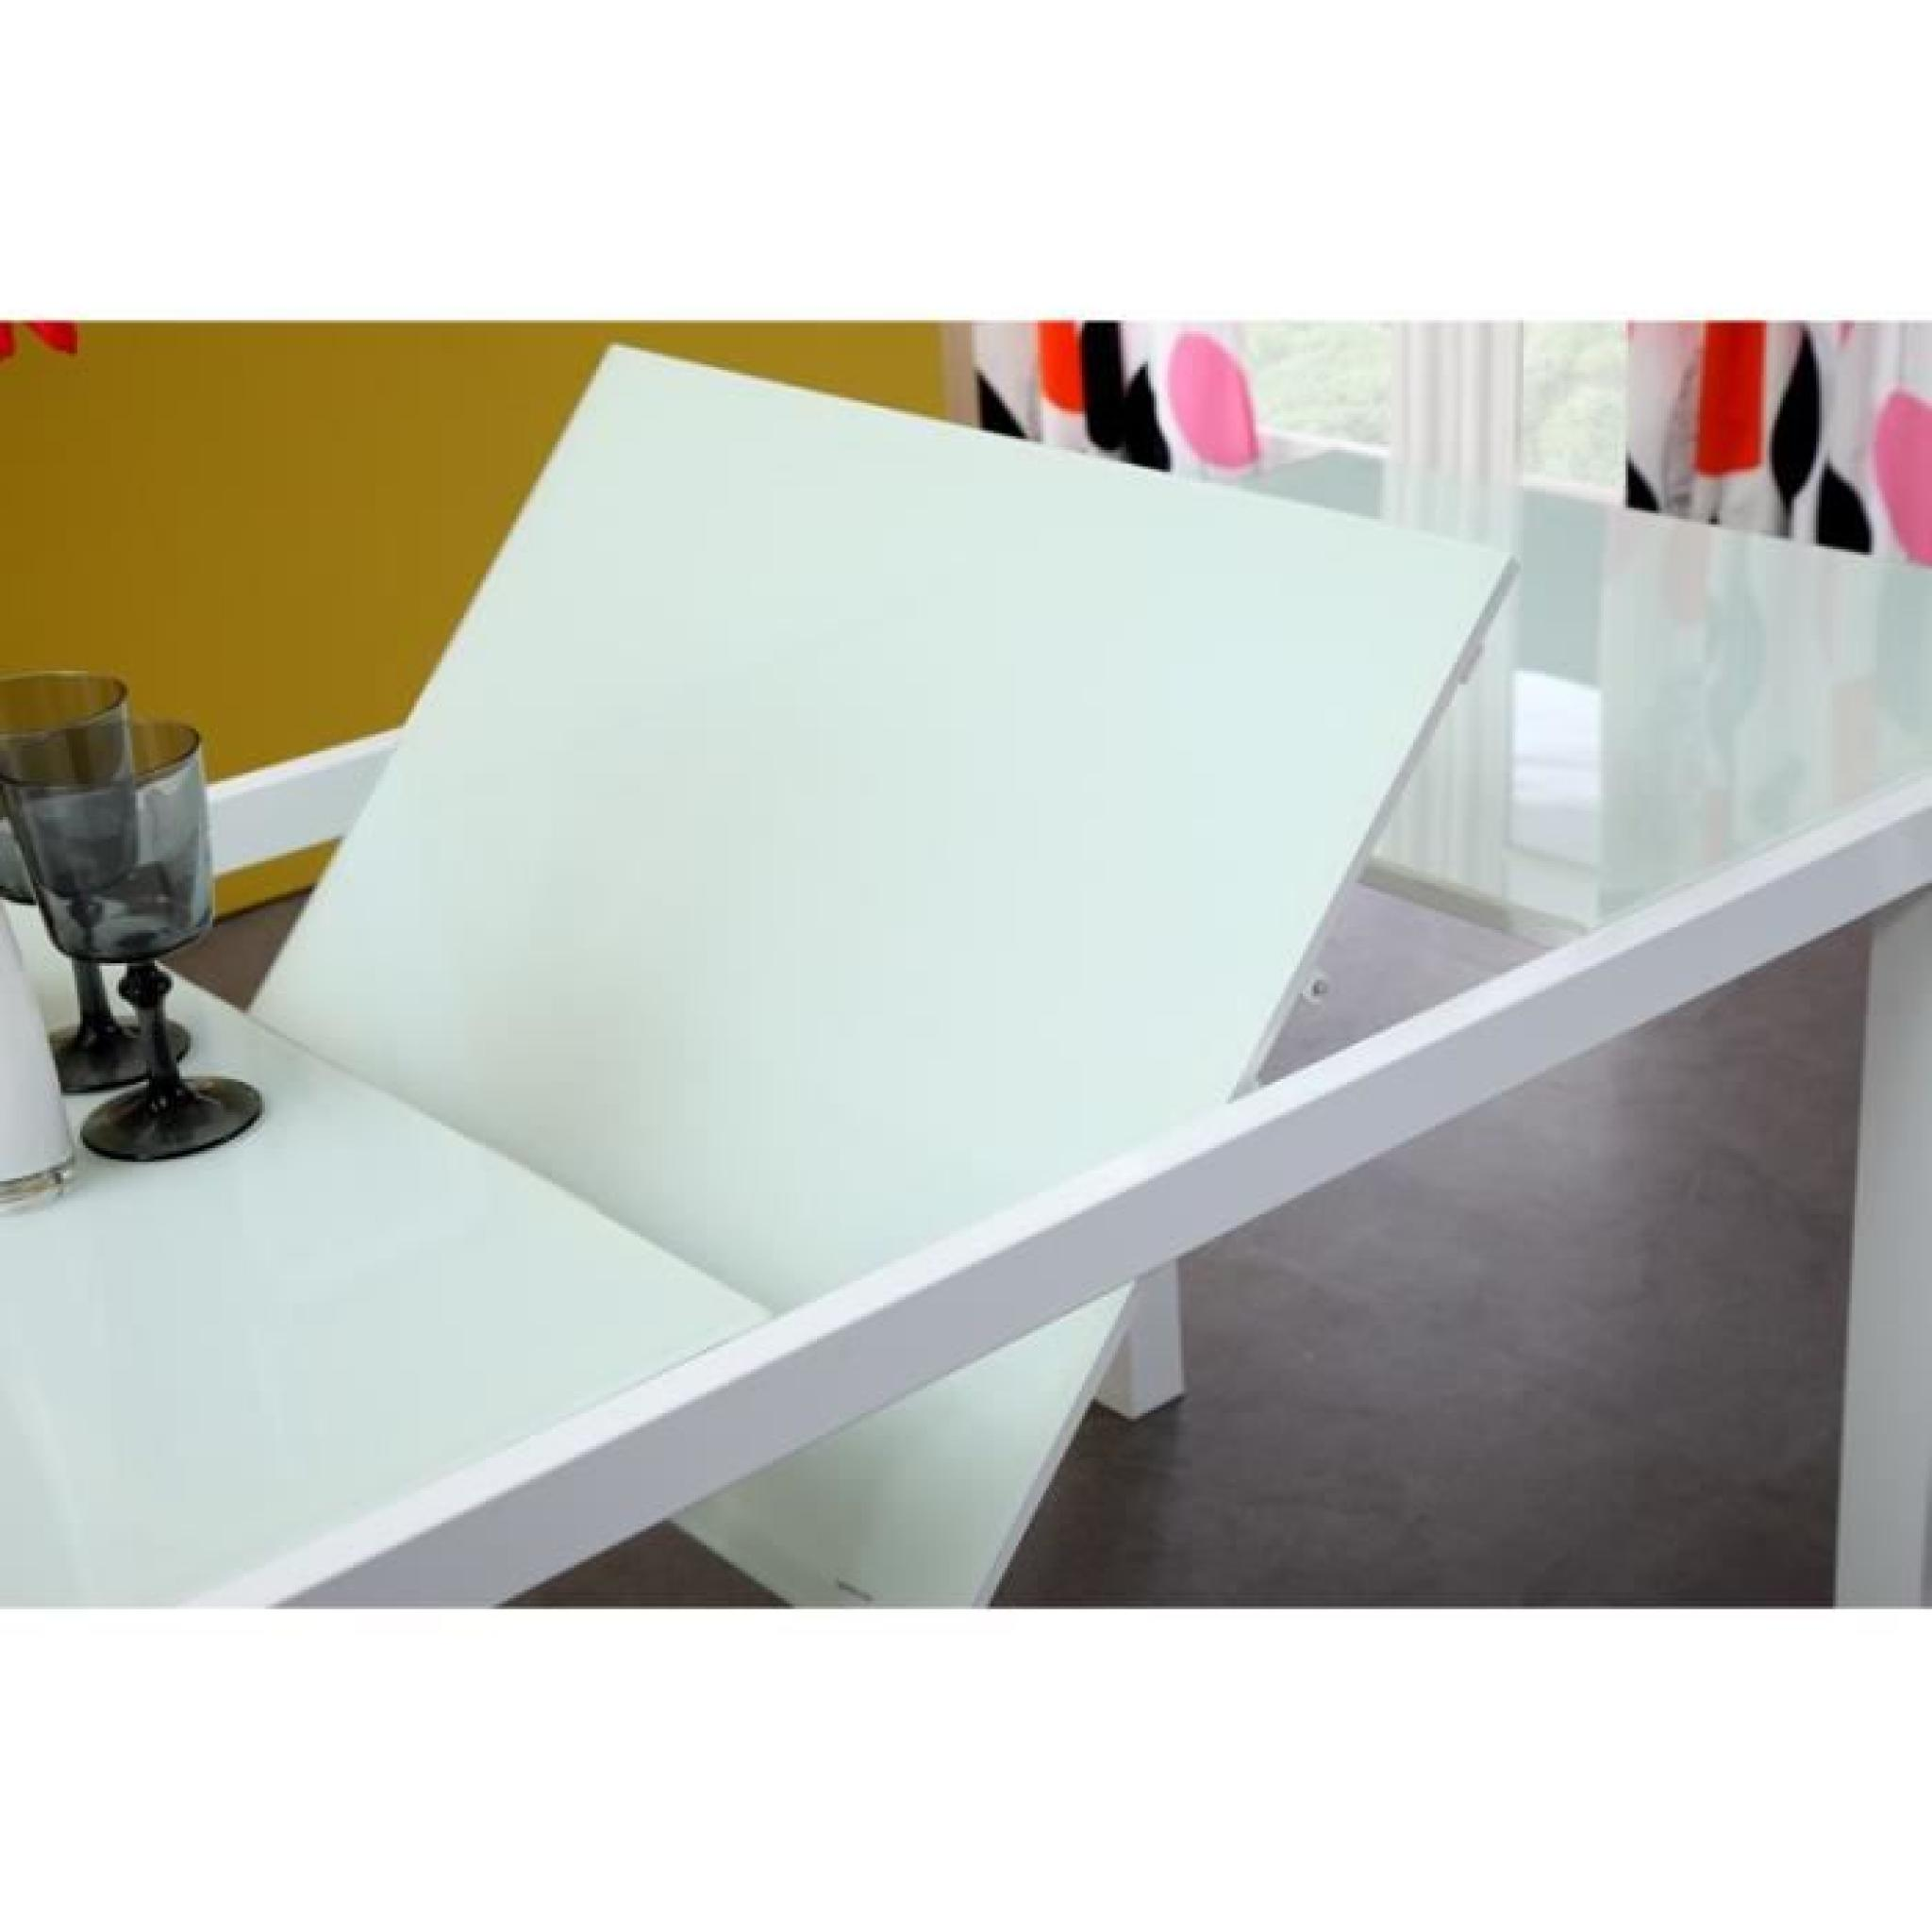 Roma table extensible 120 180cm verre blanc achat vente for Table verre blanc extensible